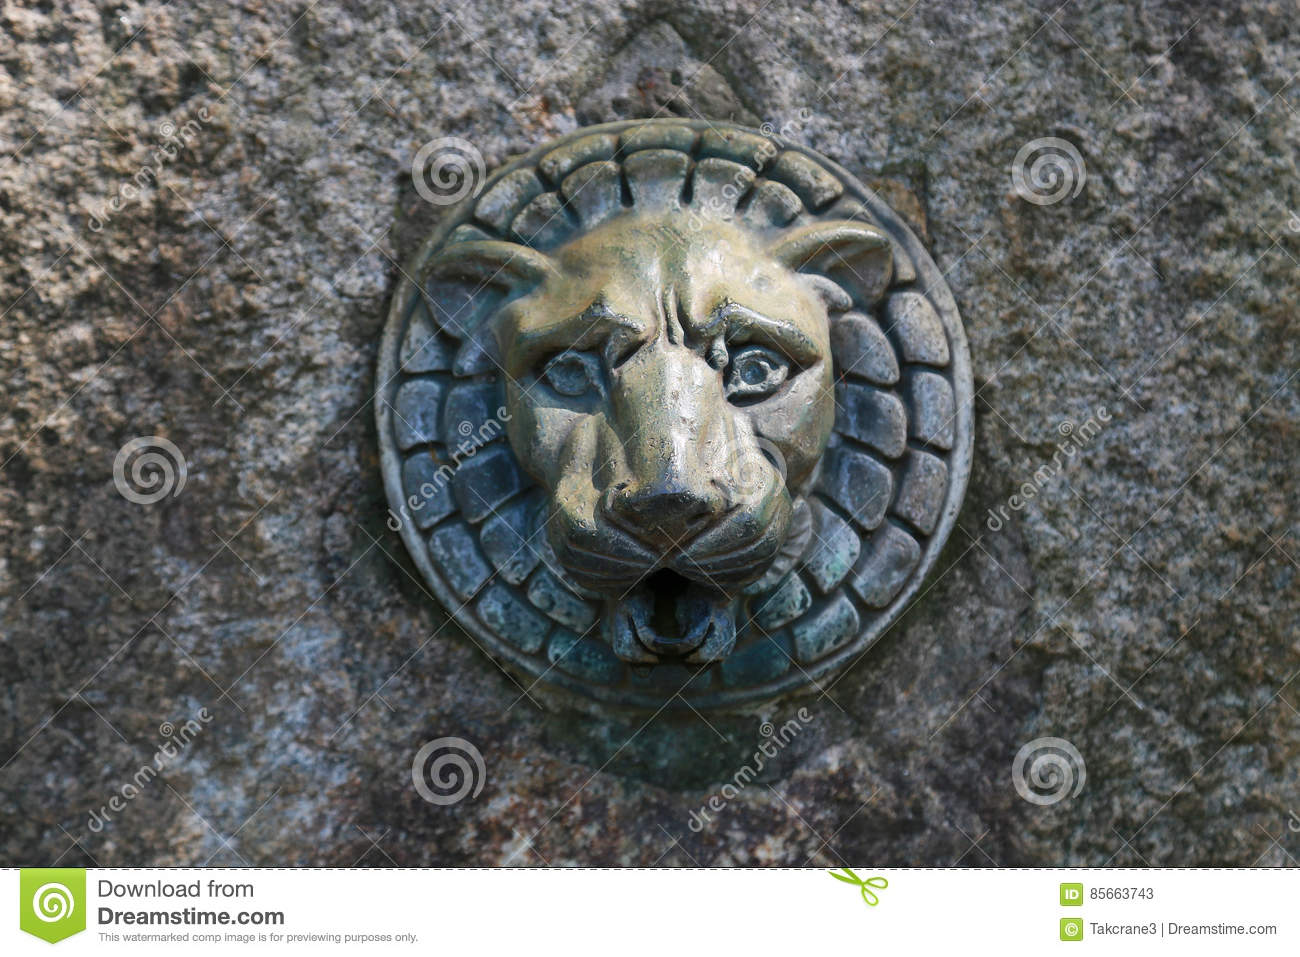 Faucet Of The Lion Of The Drinking Fountain Stock Image - Image of ...